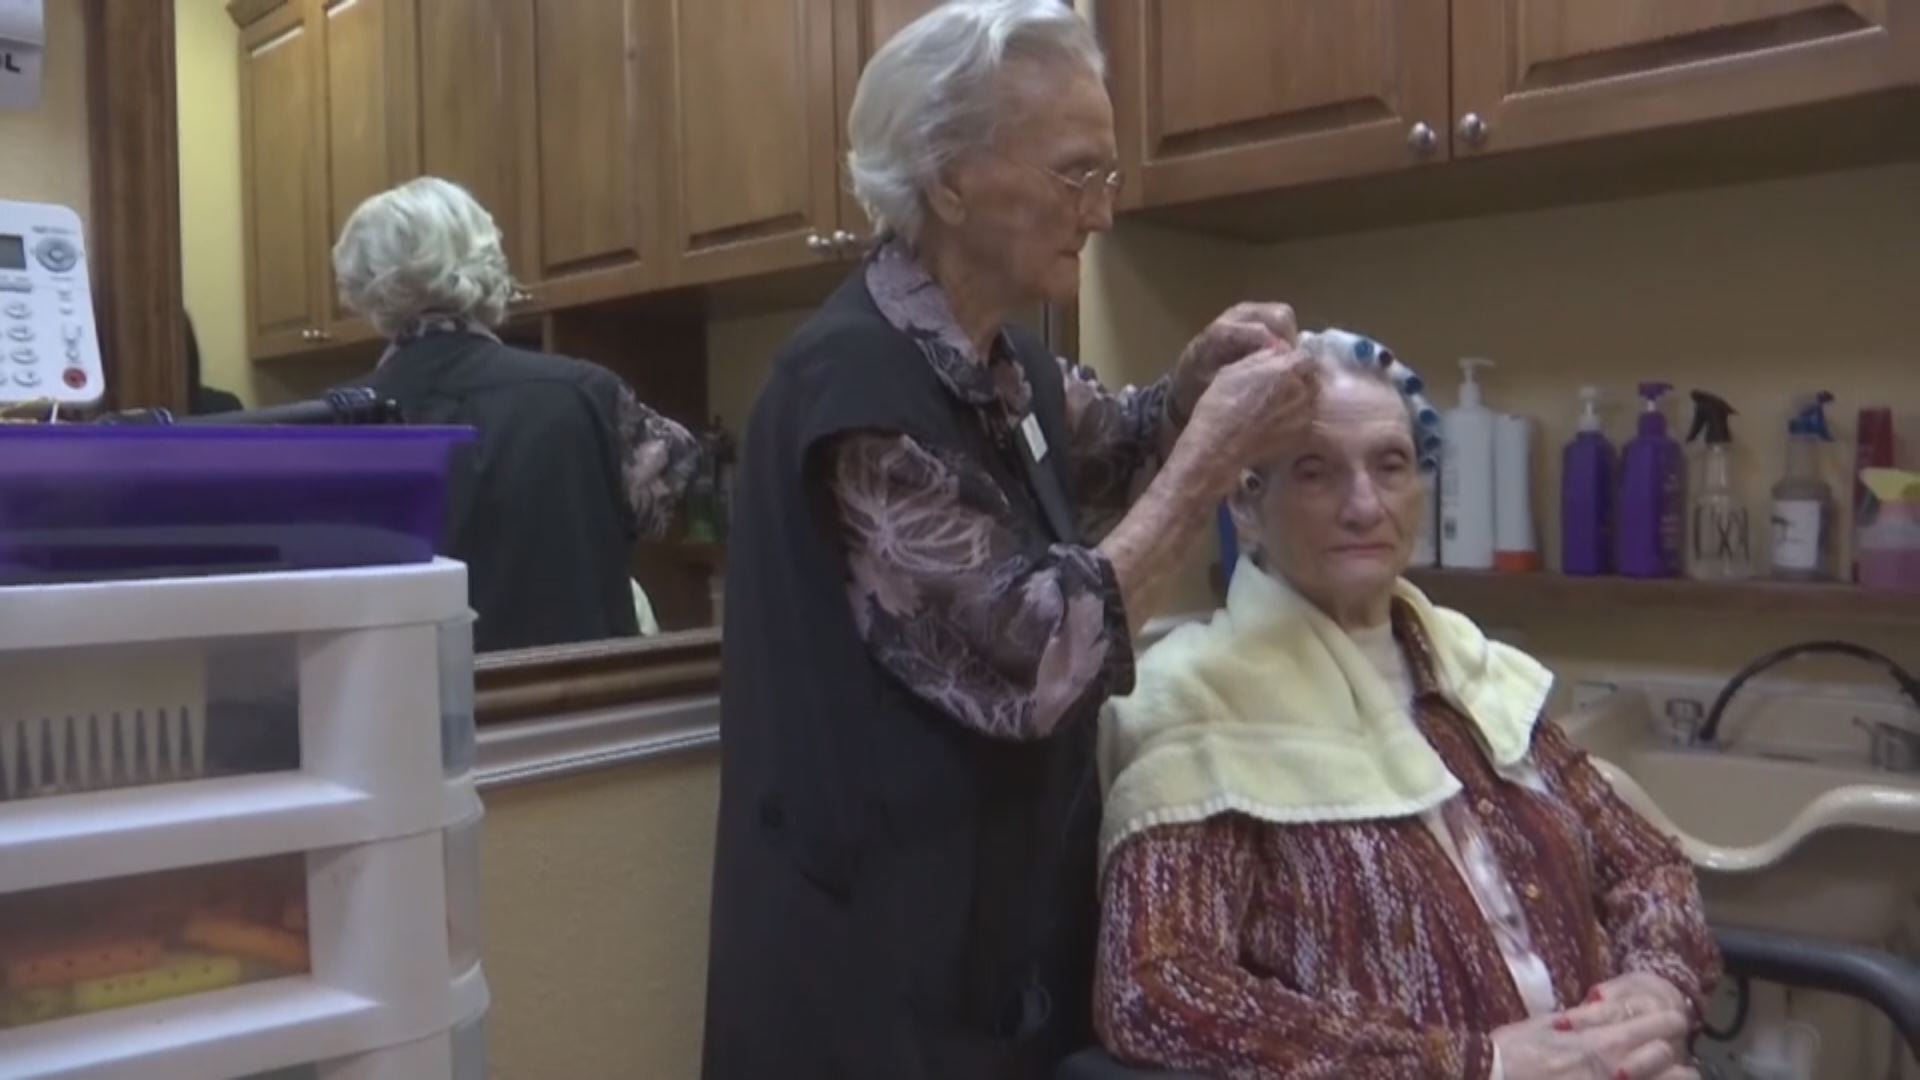 100 year old hair stylist_1521236009724.jpg.jpg